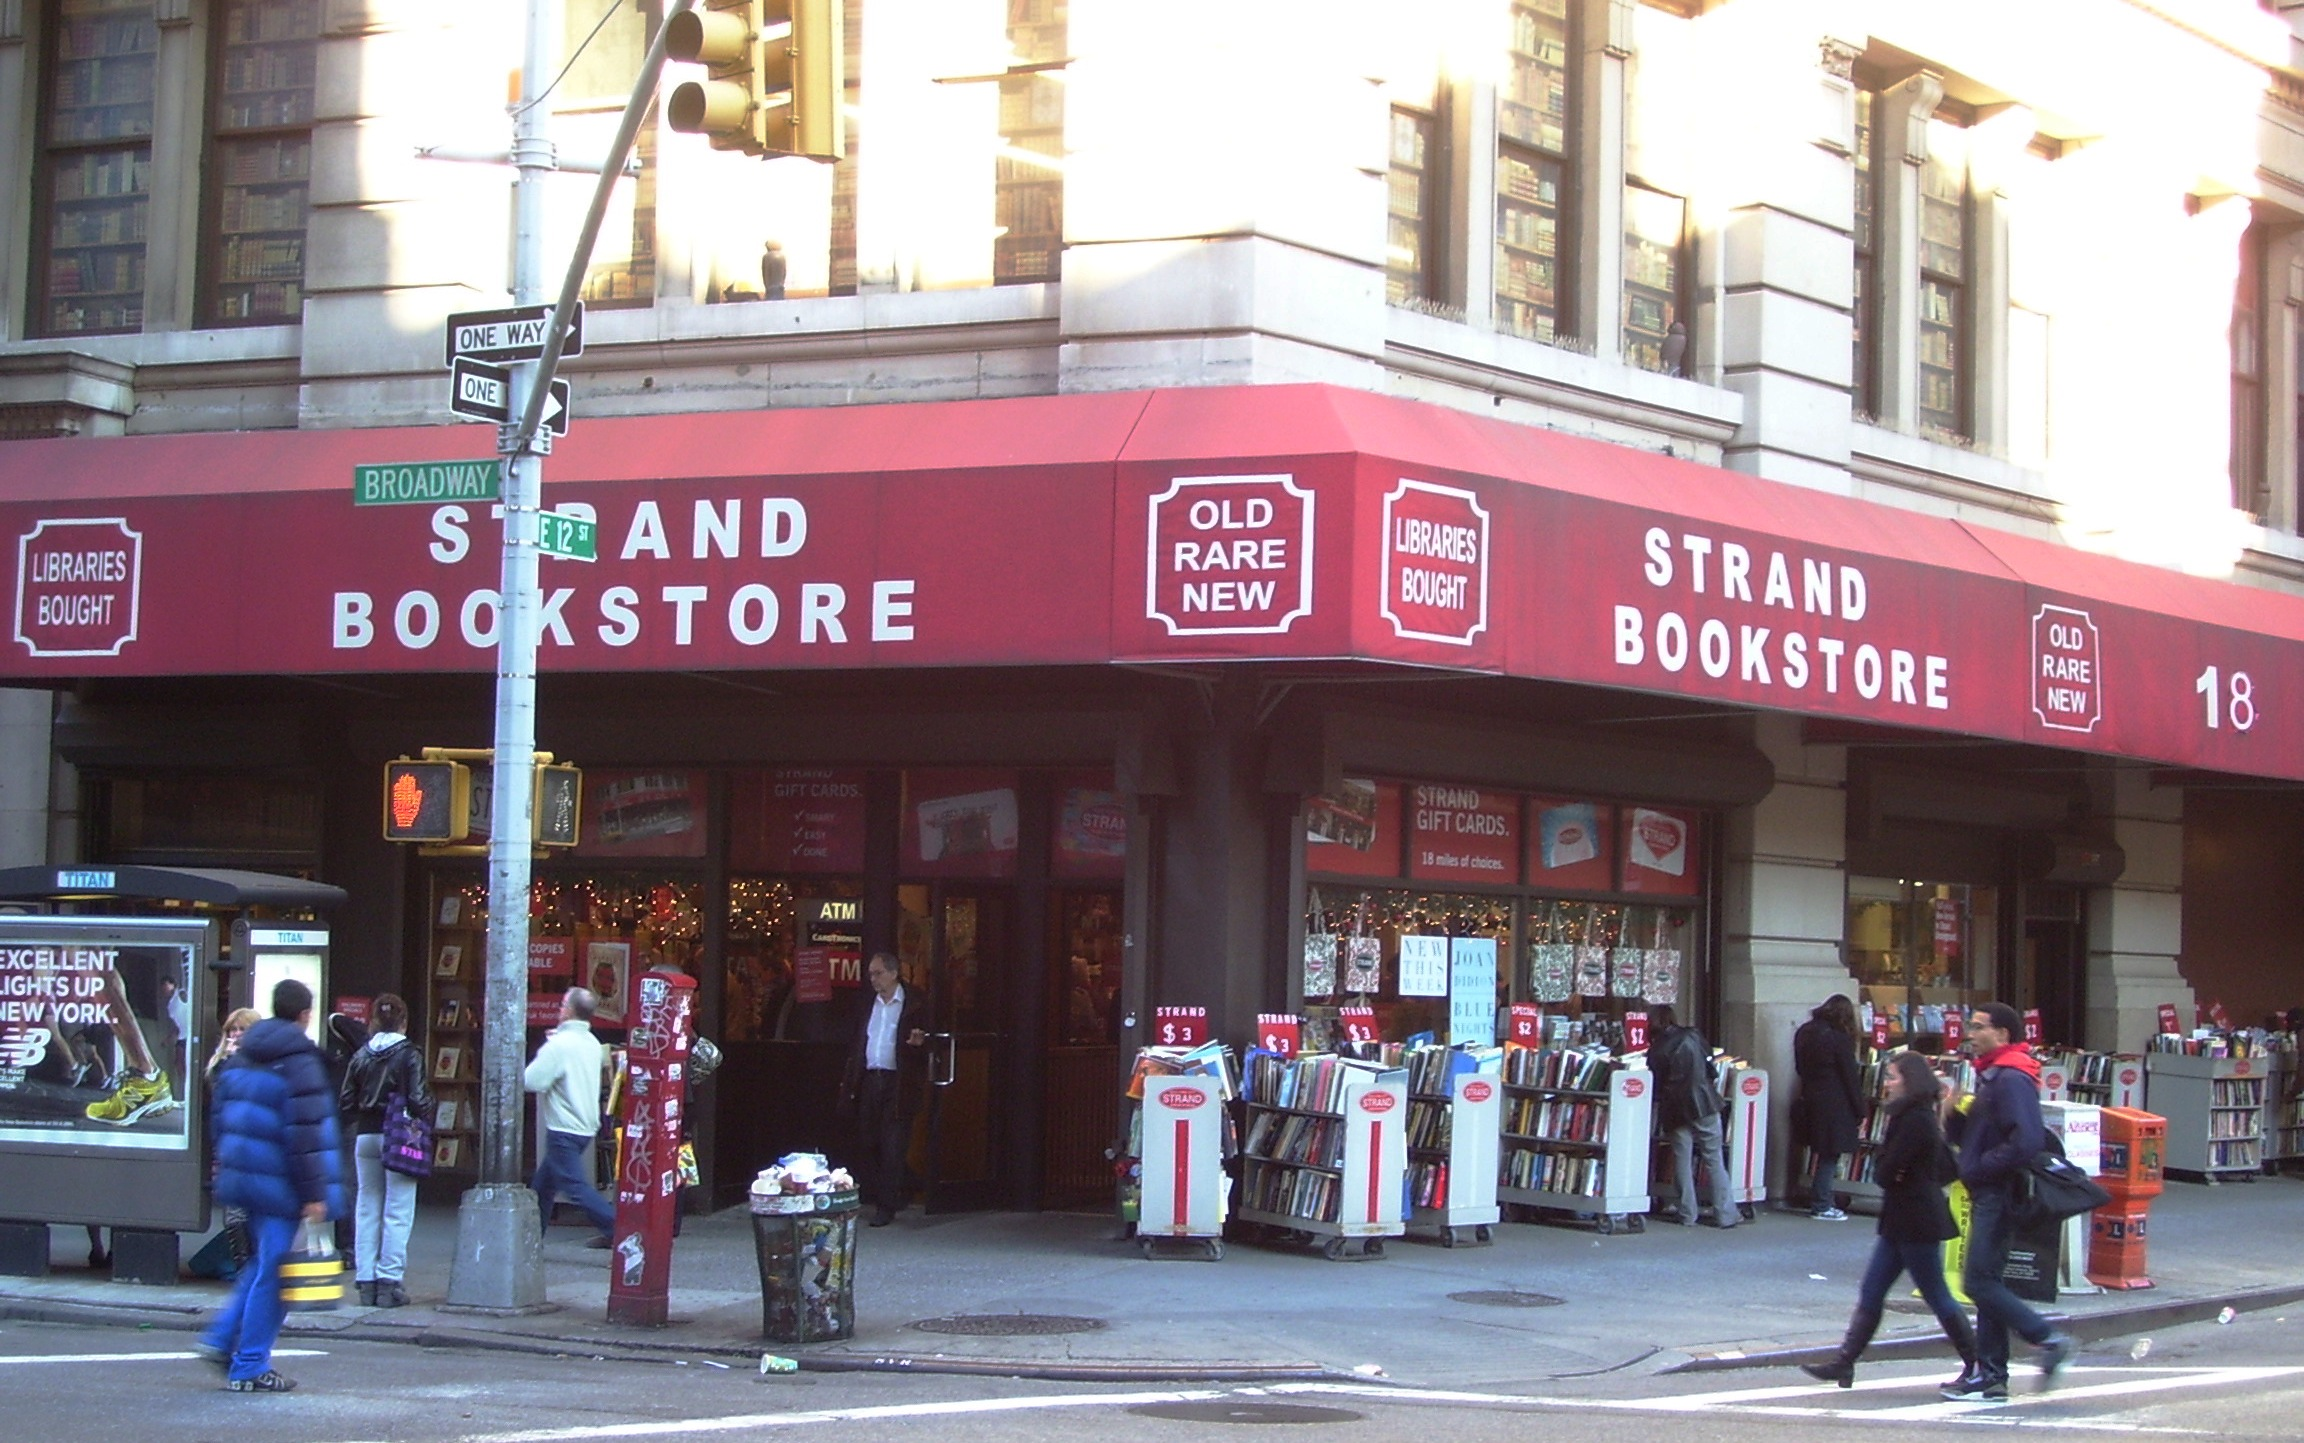 New York City Bookstore Tests Employee Literature Knowledge